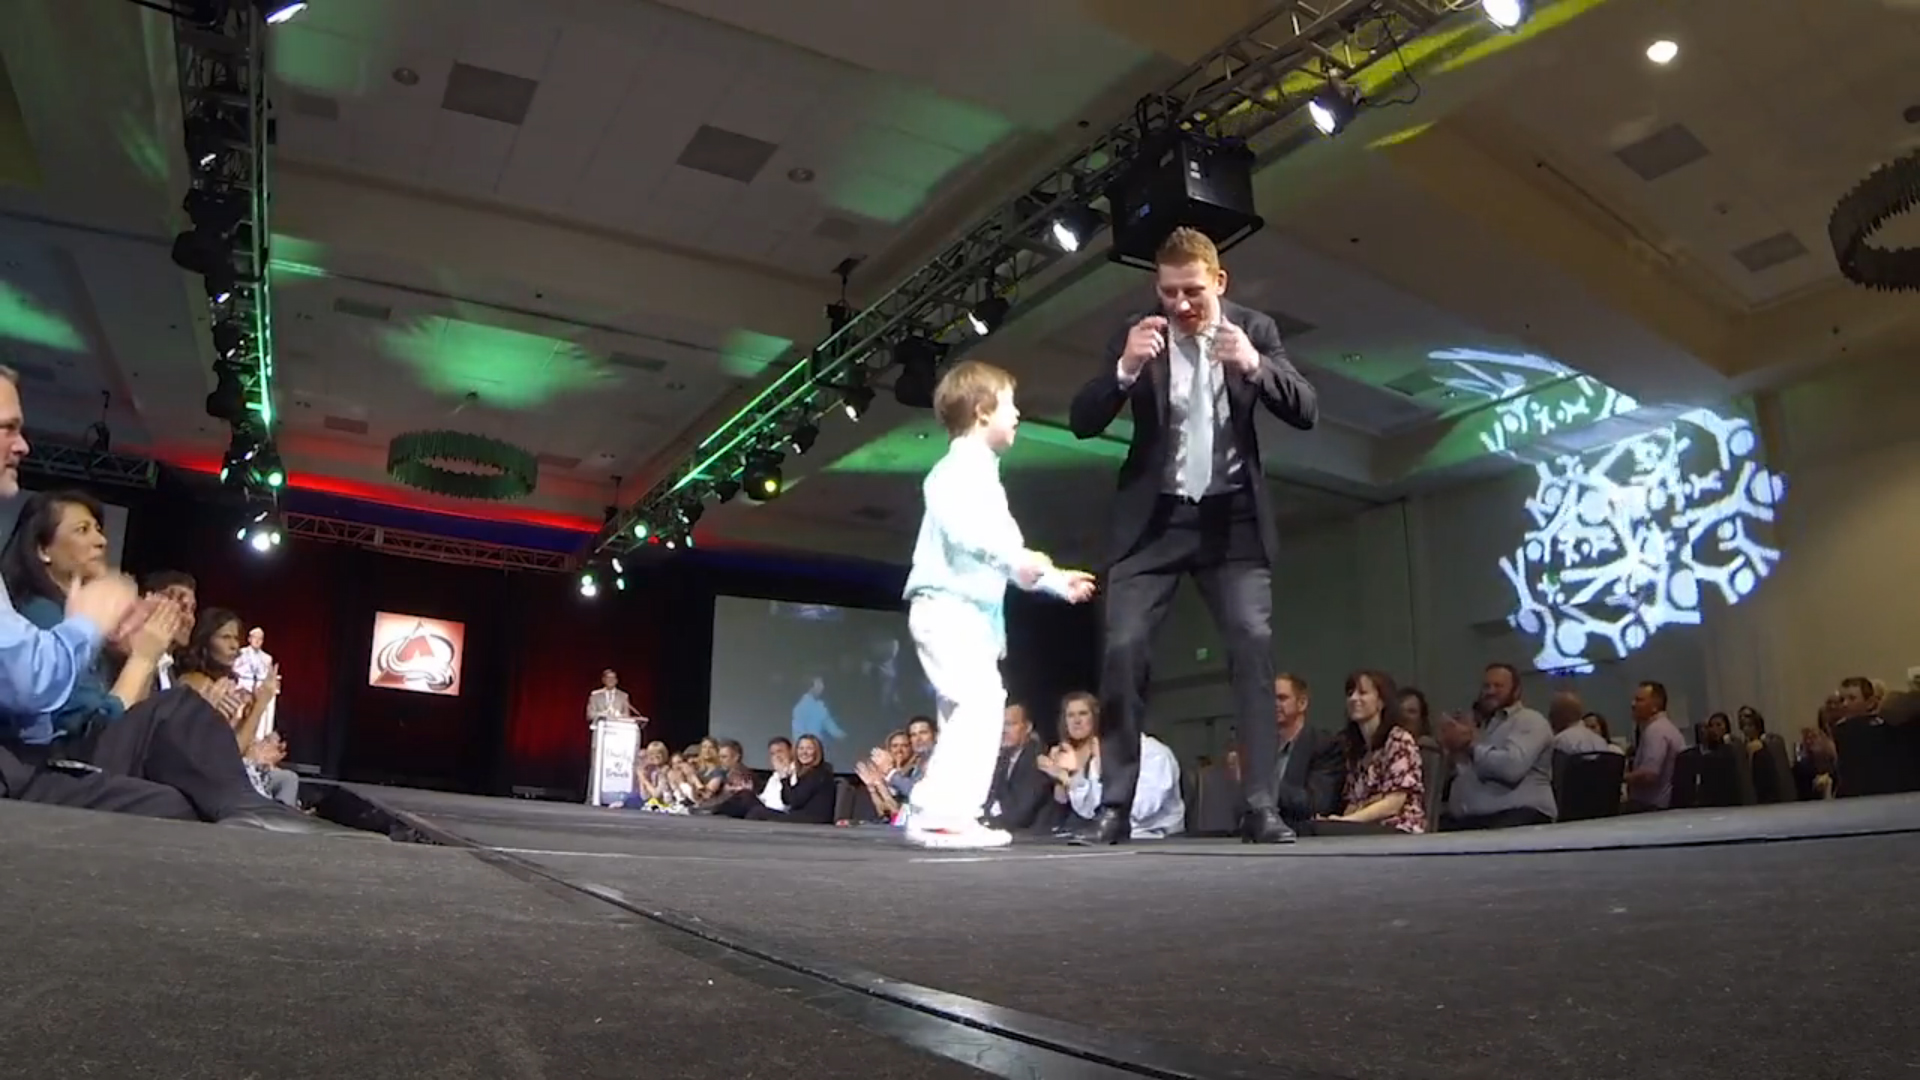 Patrick-Roy-Show-Charity-Brunch-Runway.jpg